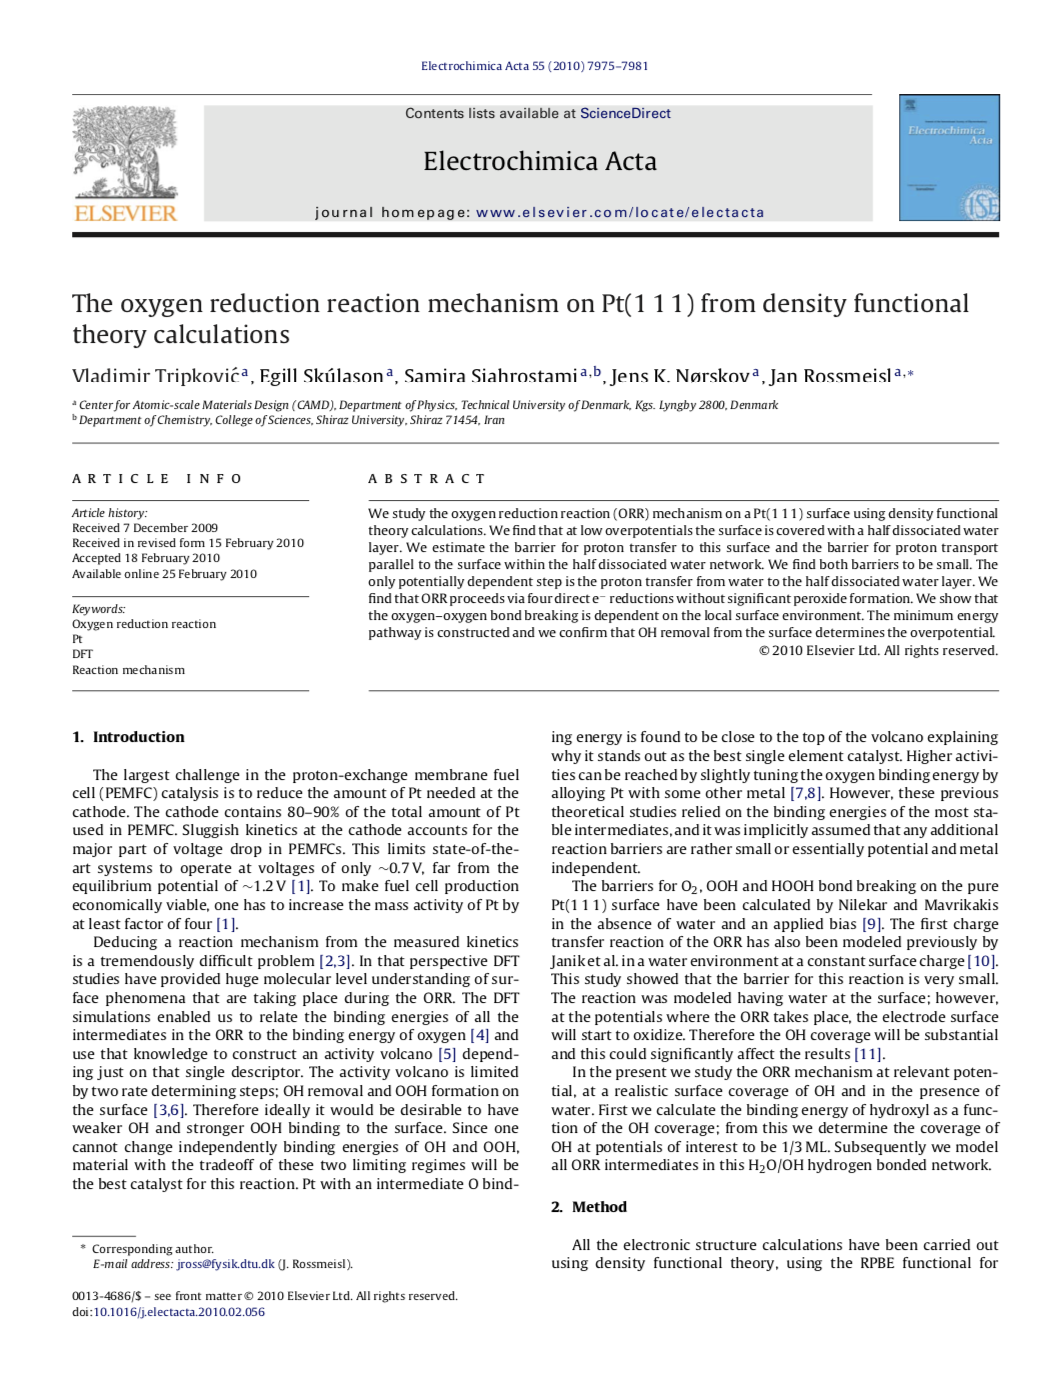 The oxygen reduction reaction mechanism on Pt(1 1 1) from density functional theory calculations